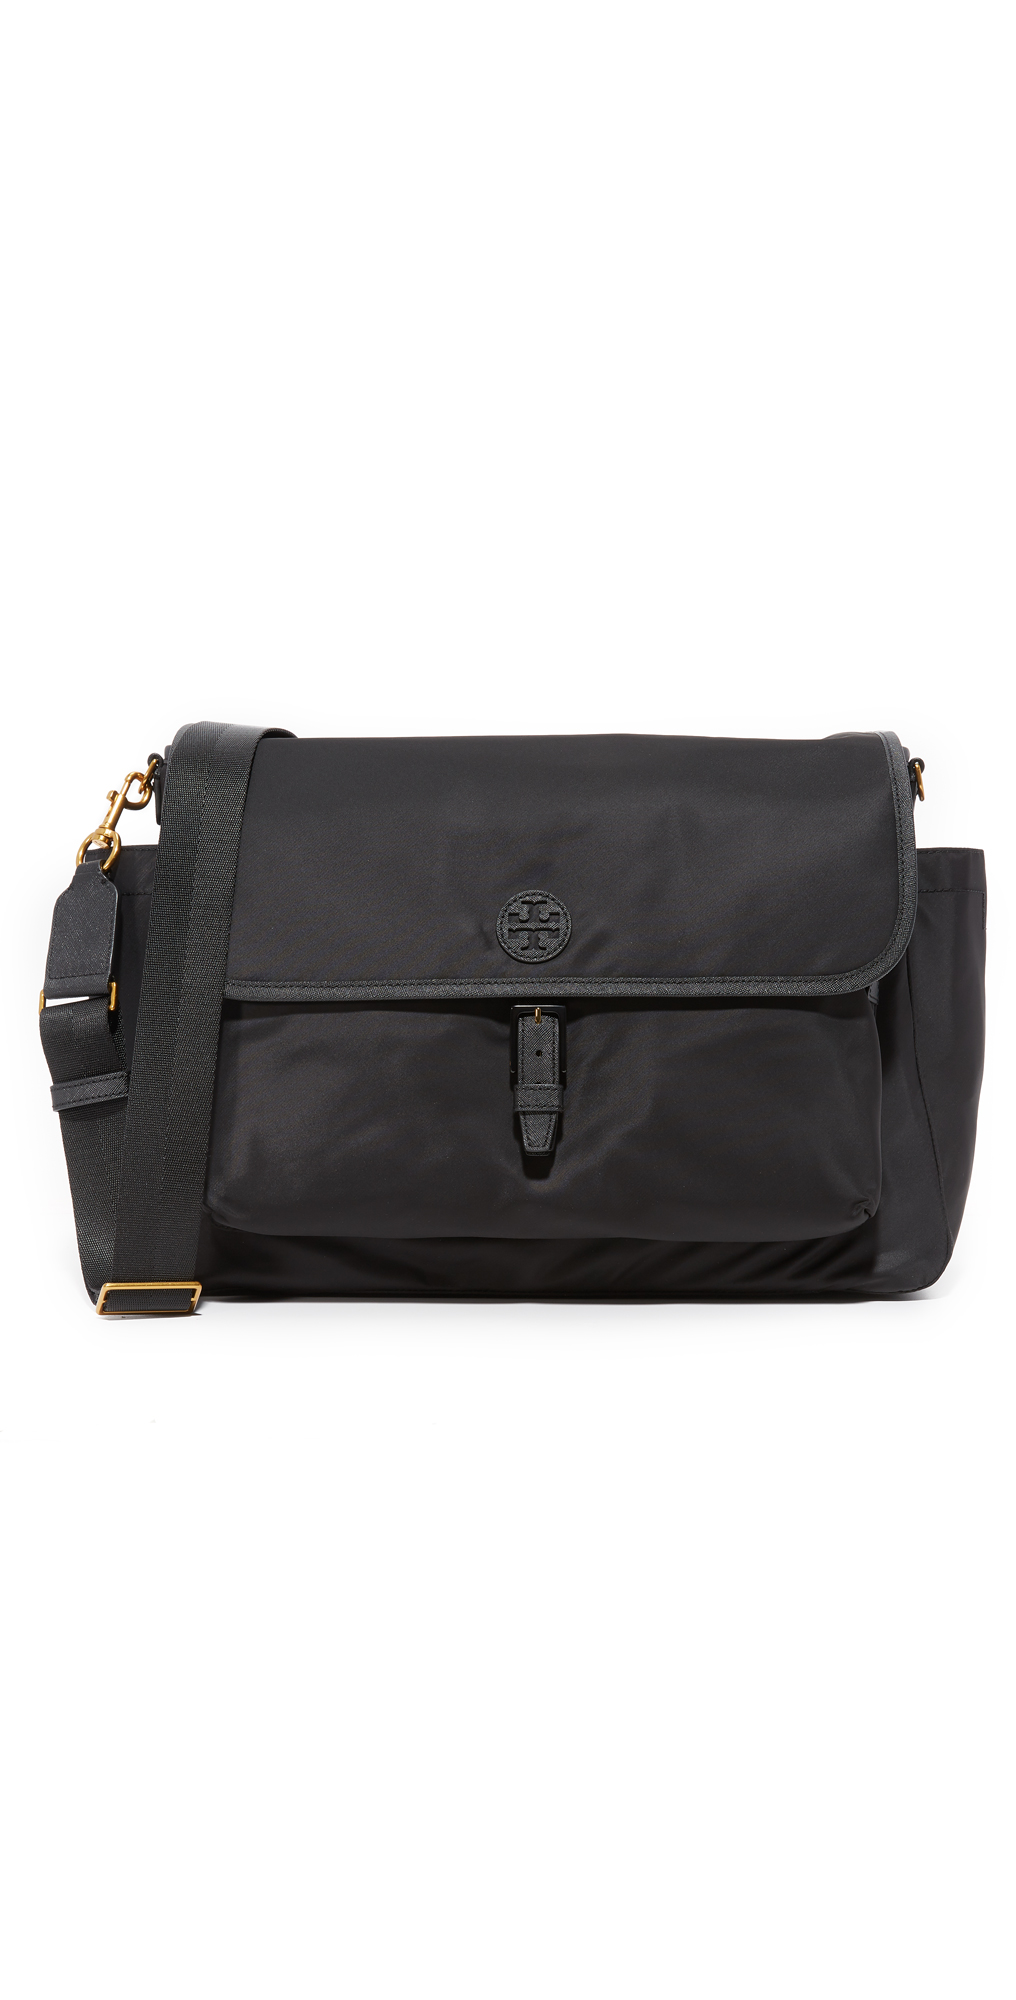 Scout Nylon Messenger Baby Bag Tory Burch